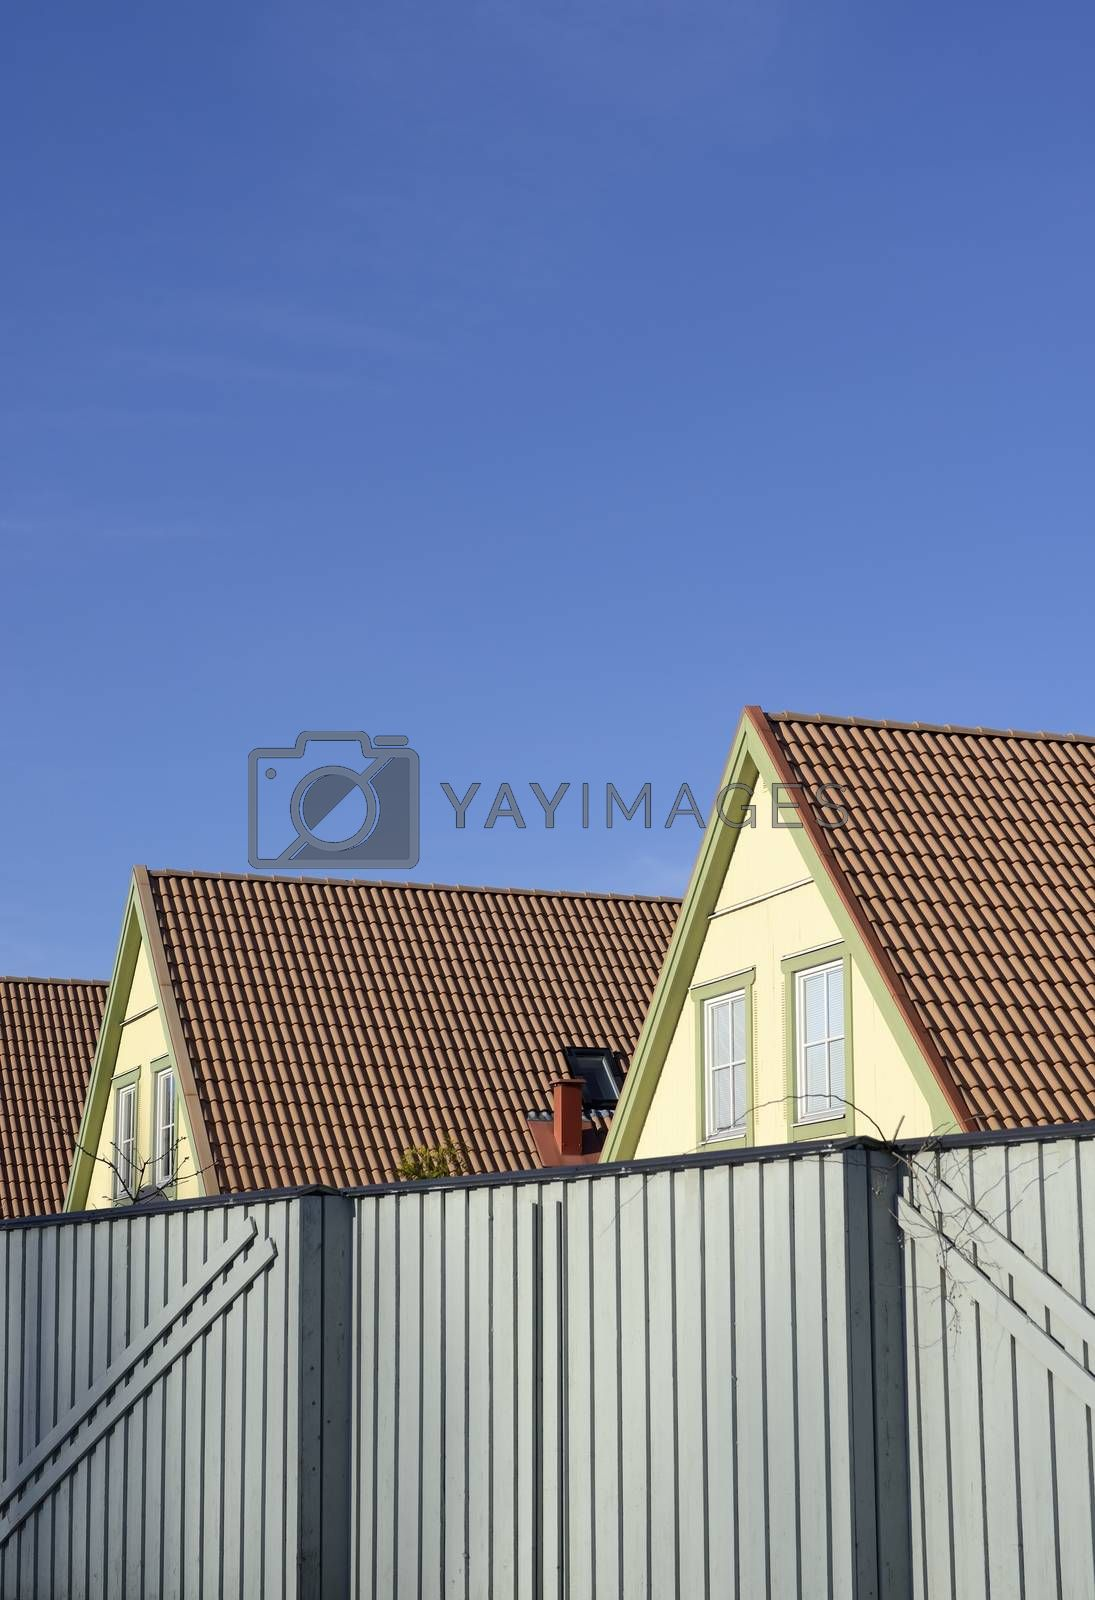 Photograph of a new house rooftop against a clear blue sky.